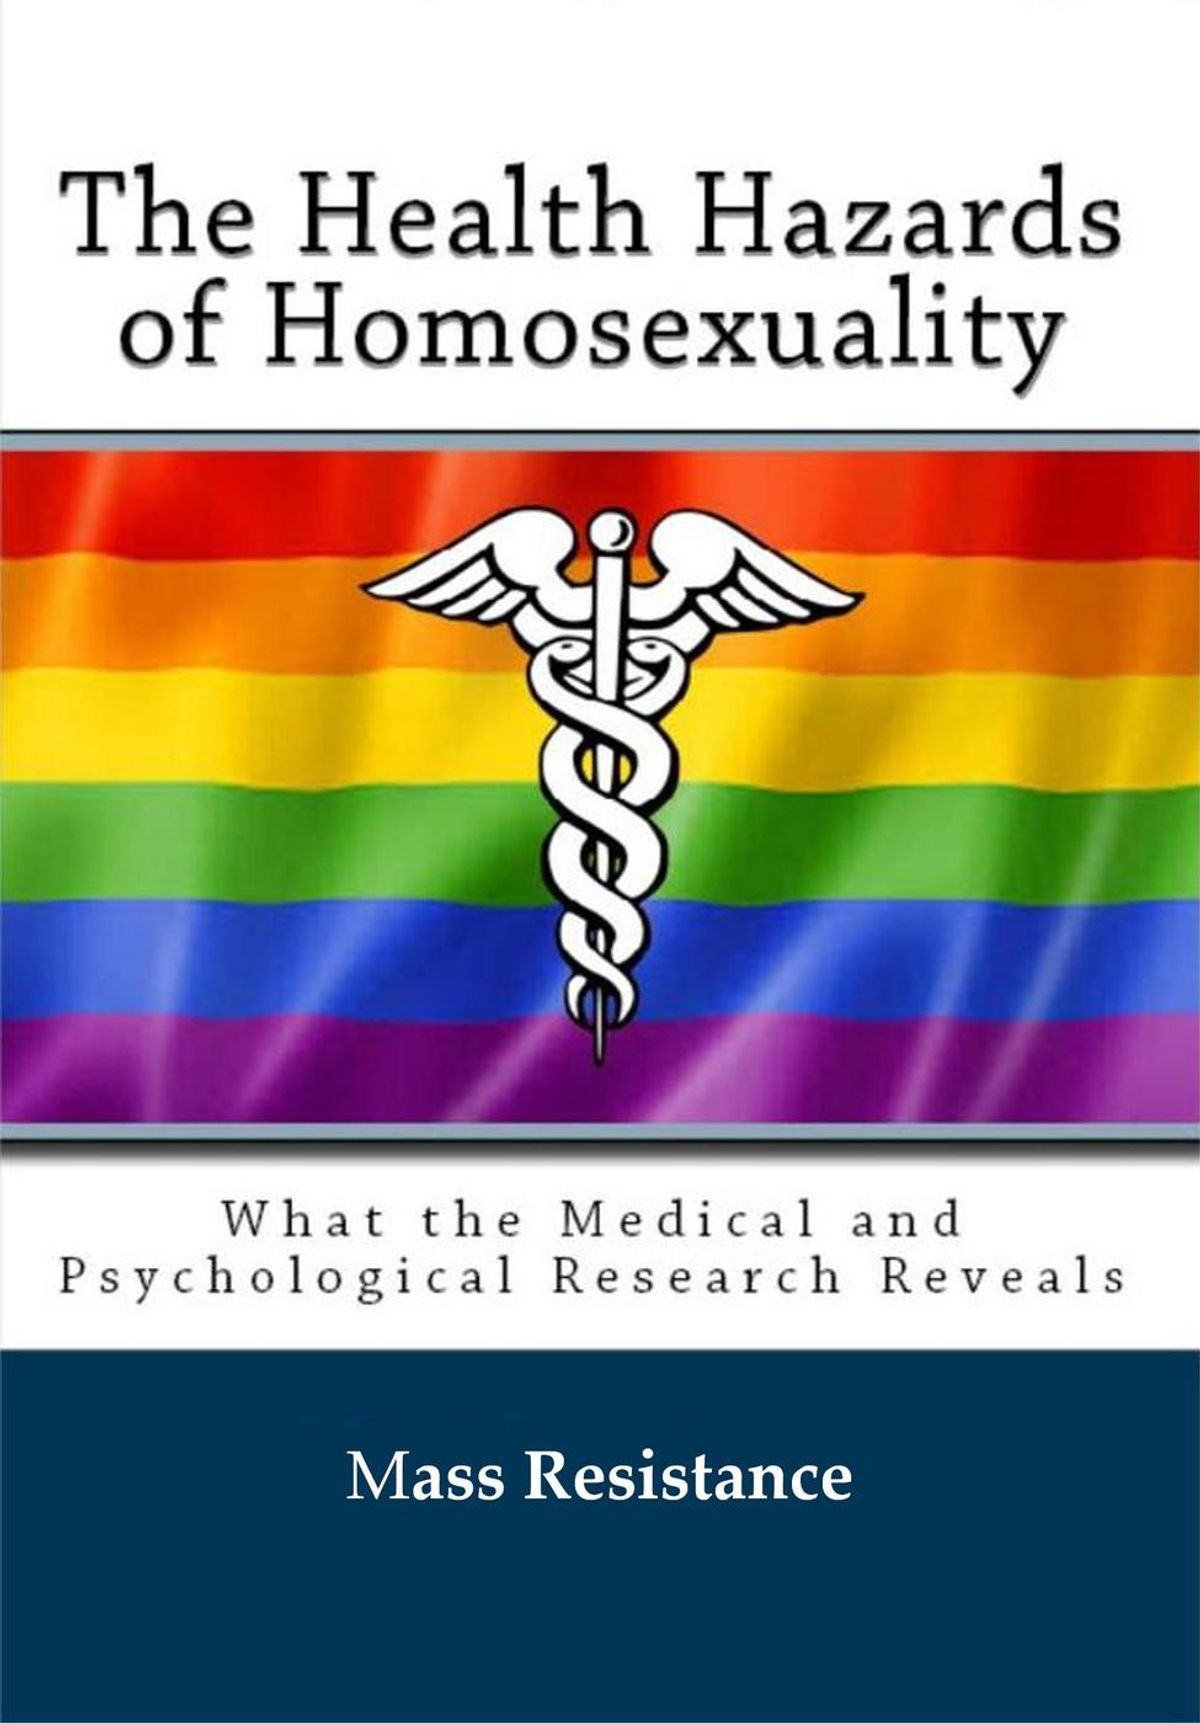 the-health-hazards-of-homosexuality-what-the-medical-and-psychological-research-reveals.jpg